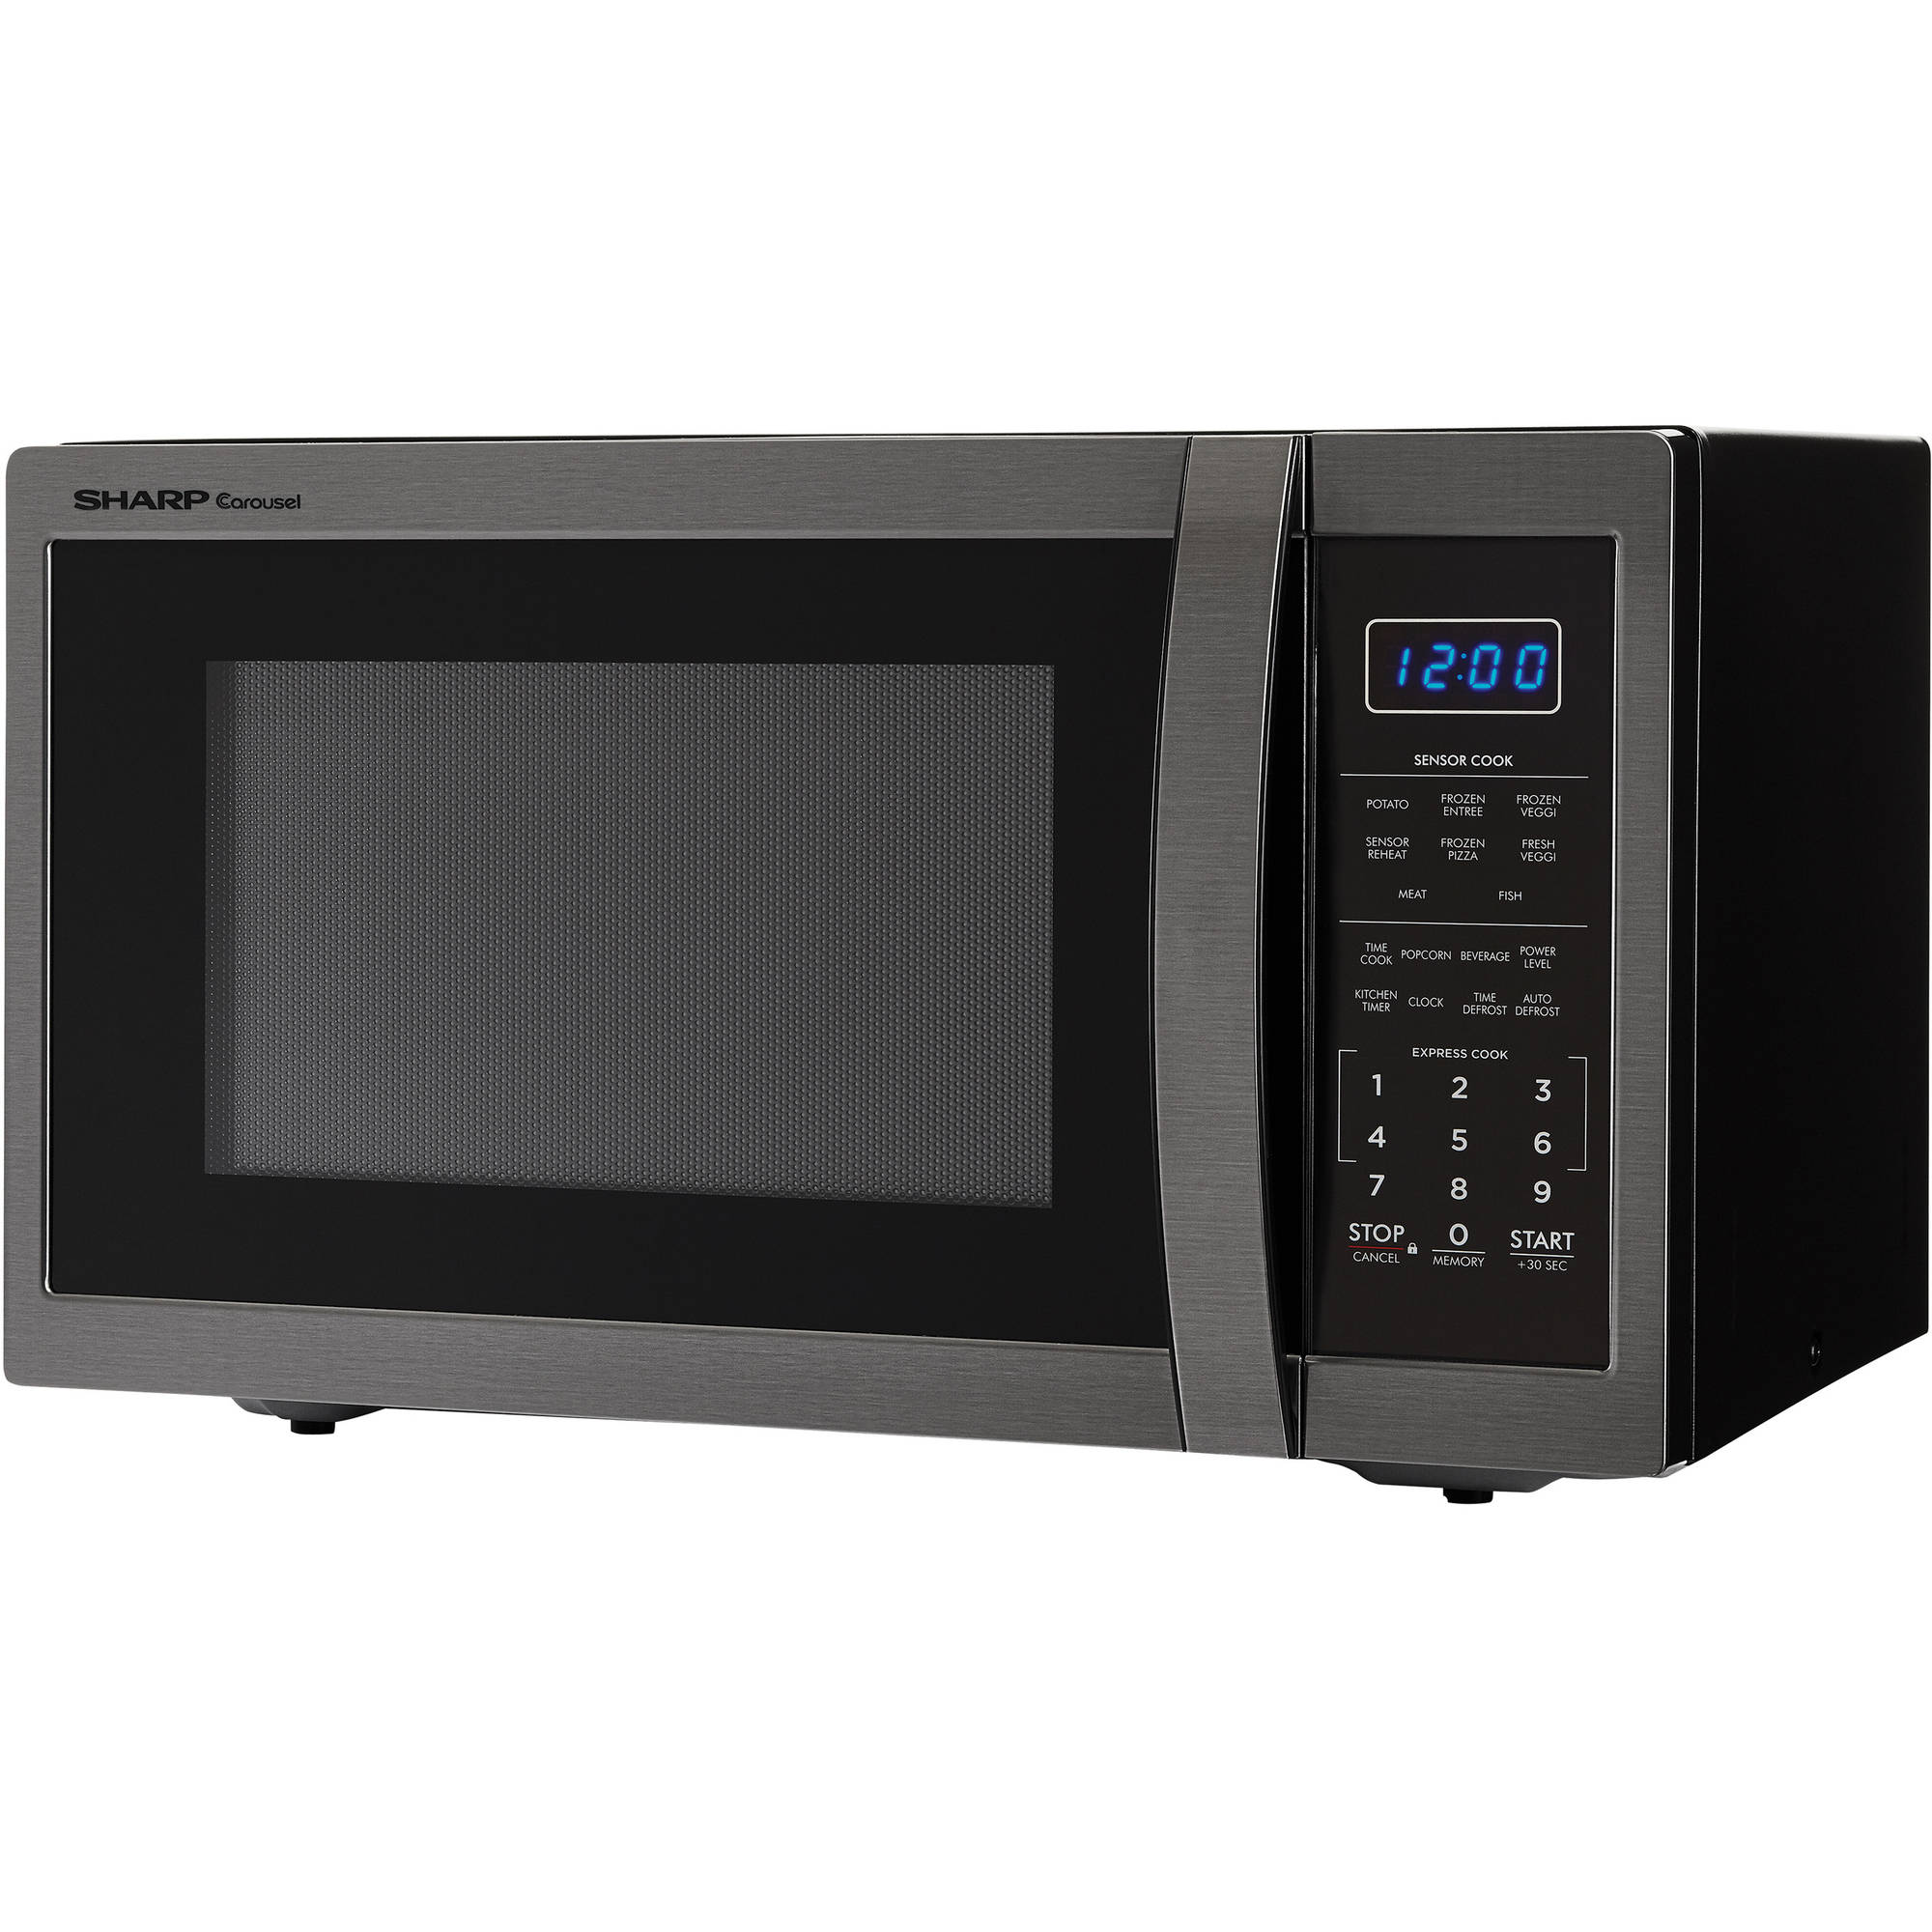 Stainless Interior Microwave Sharp Drawer Microwave 30 20l Manual Control Microwave With